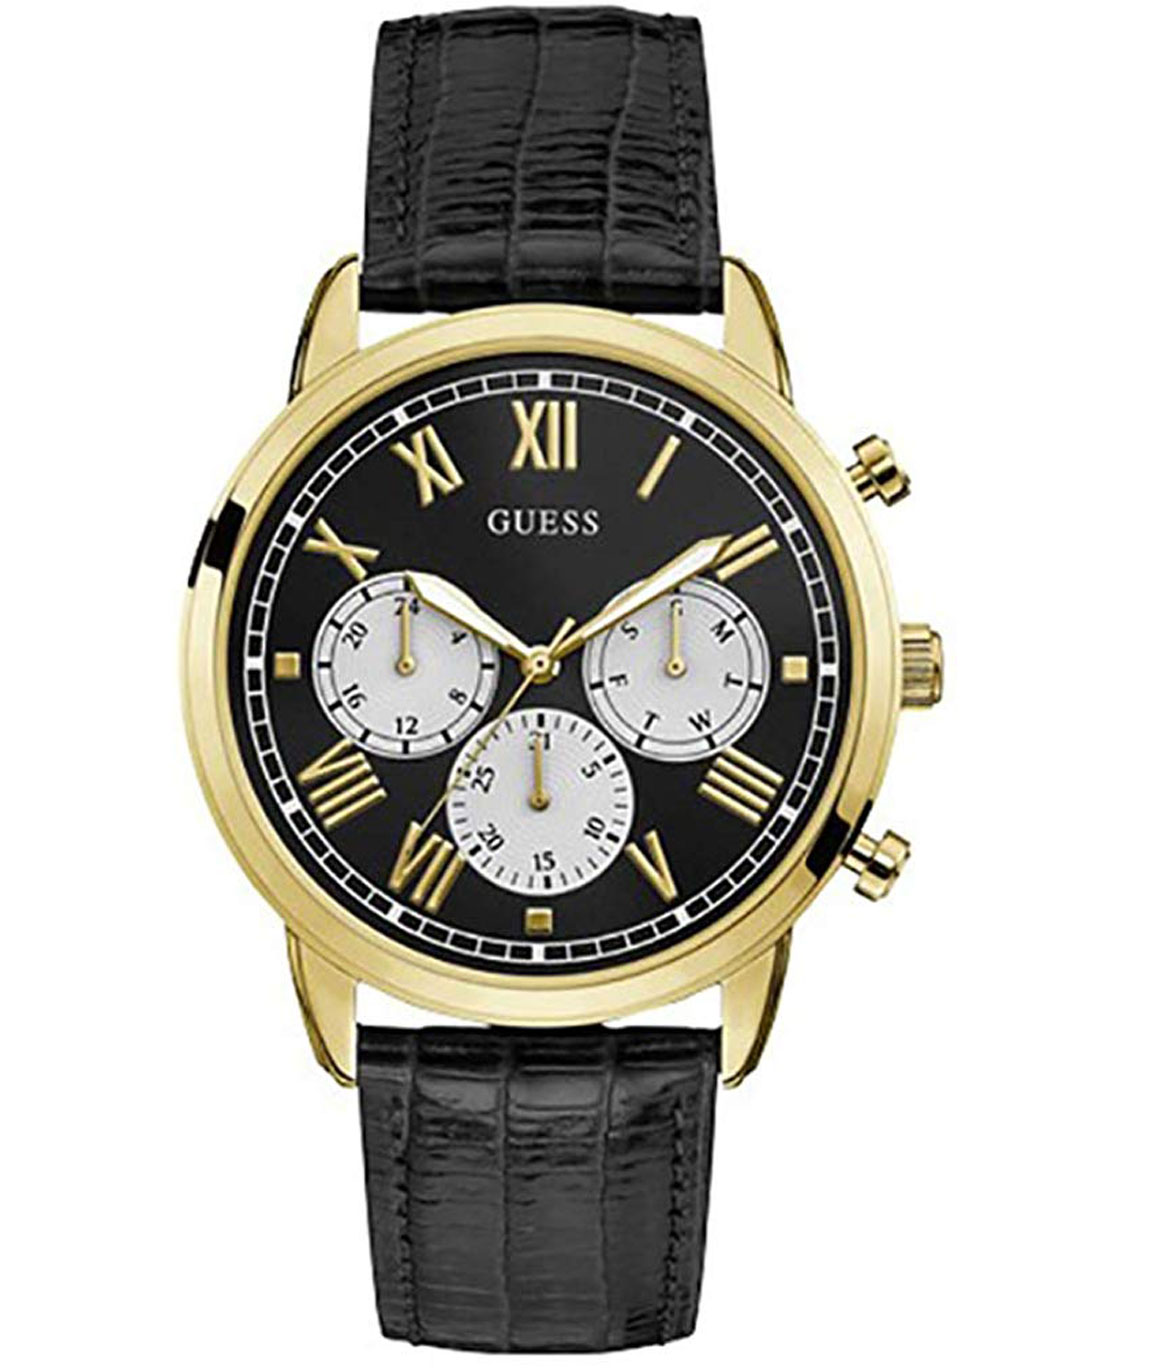 Guess Gents Gold Tone CASE Black Genuine Leather Watch